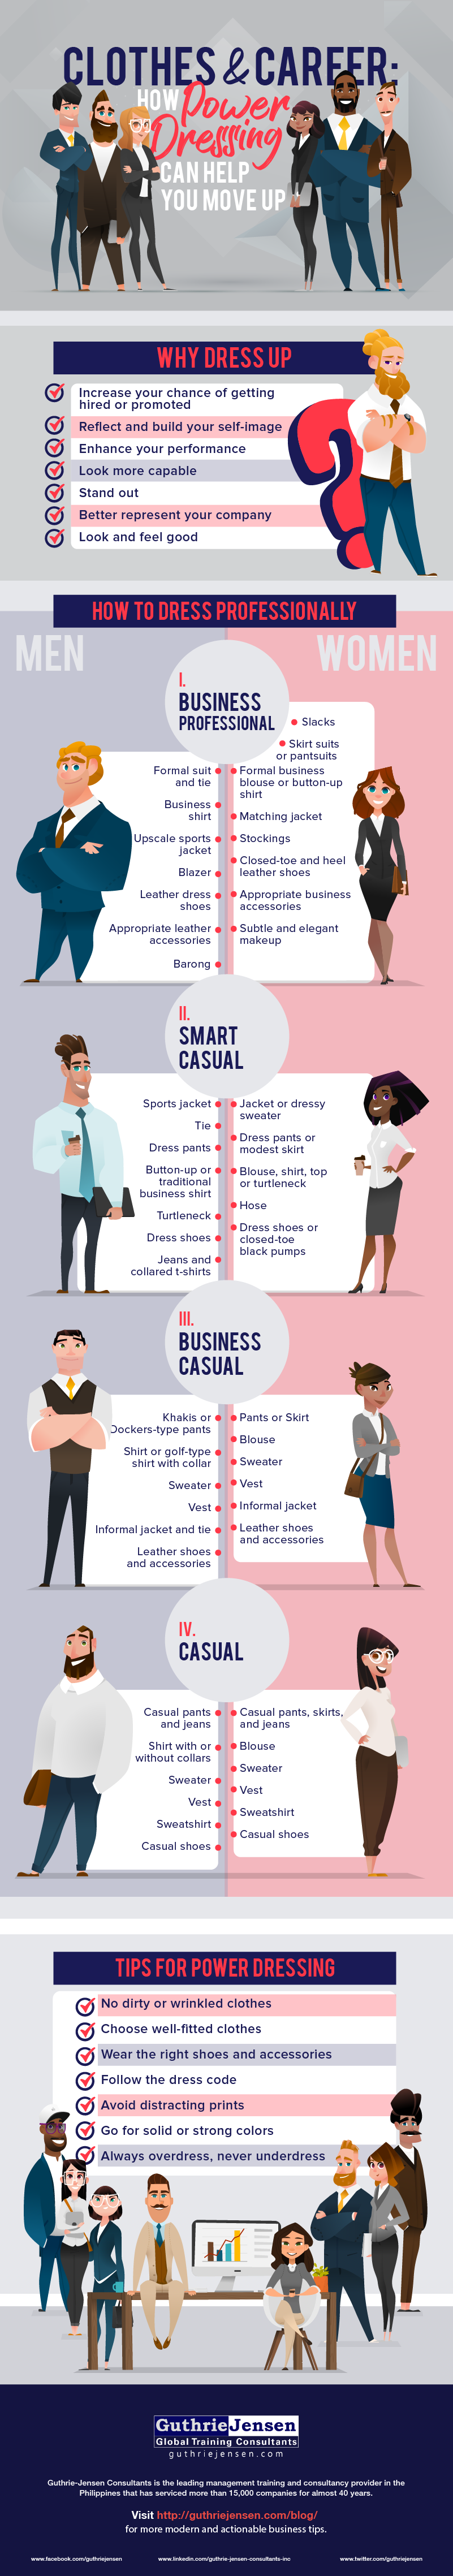 The Importance of Dress: How Appropriate Clothes Help Accelerate Your Climb - Infographic